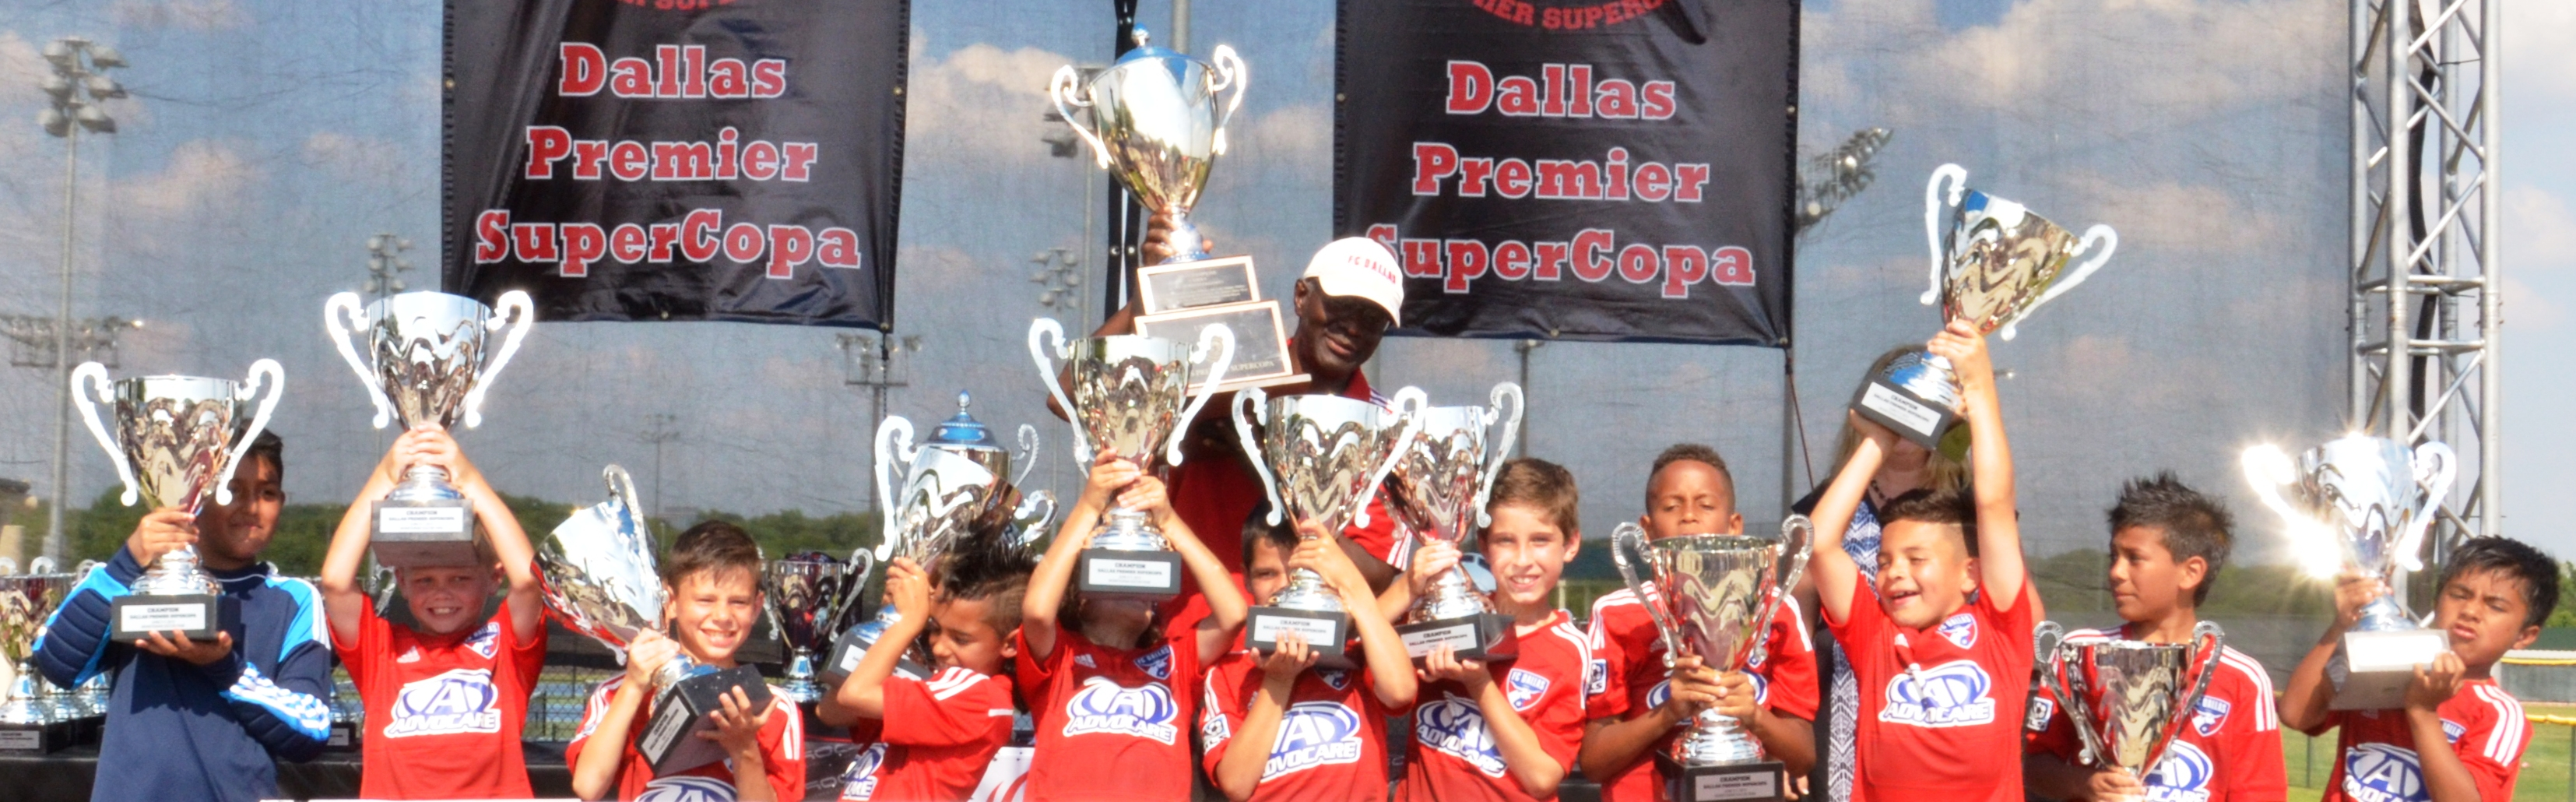 FC Dallas 06B Premier Red JT - U9 CHAMPIONS - Copy.jpg